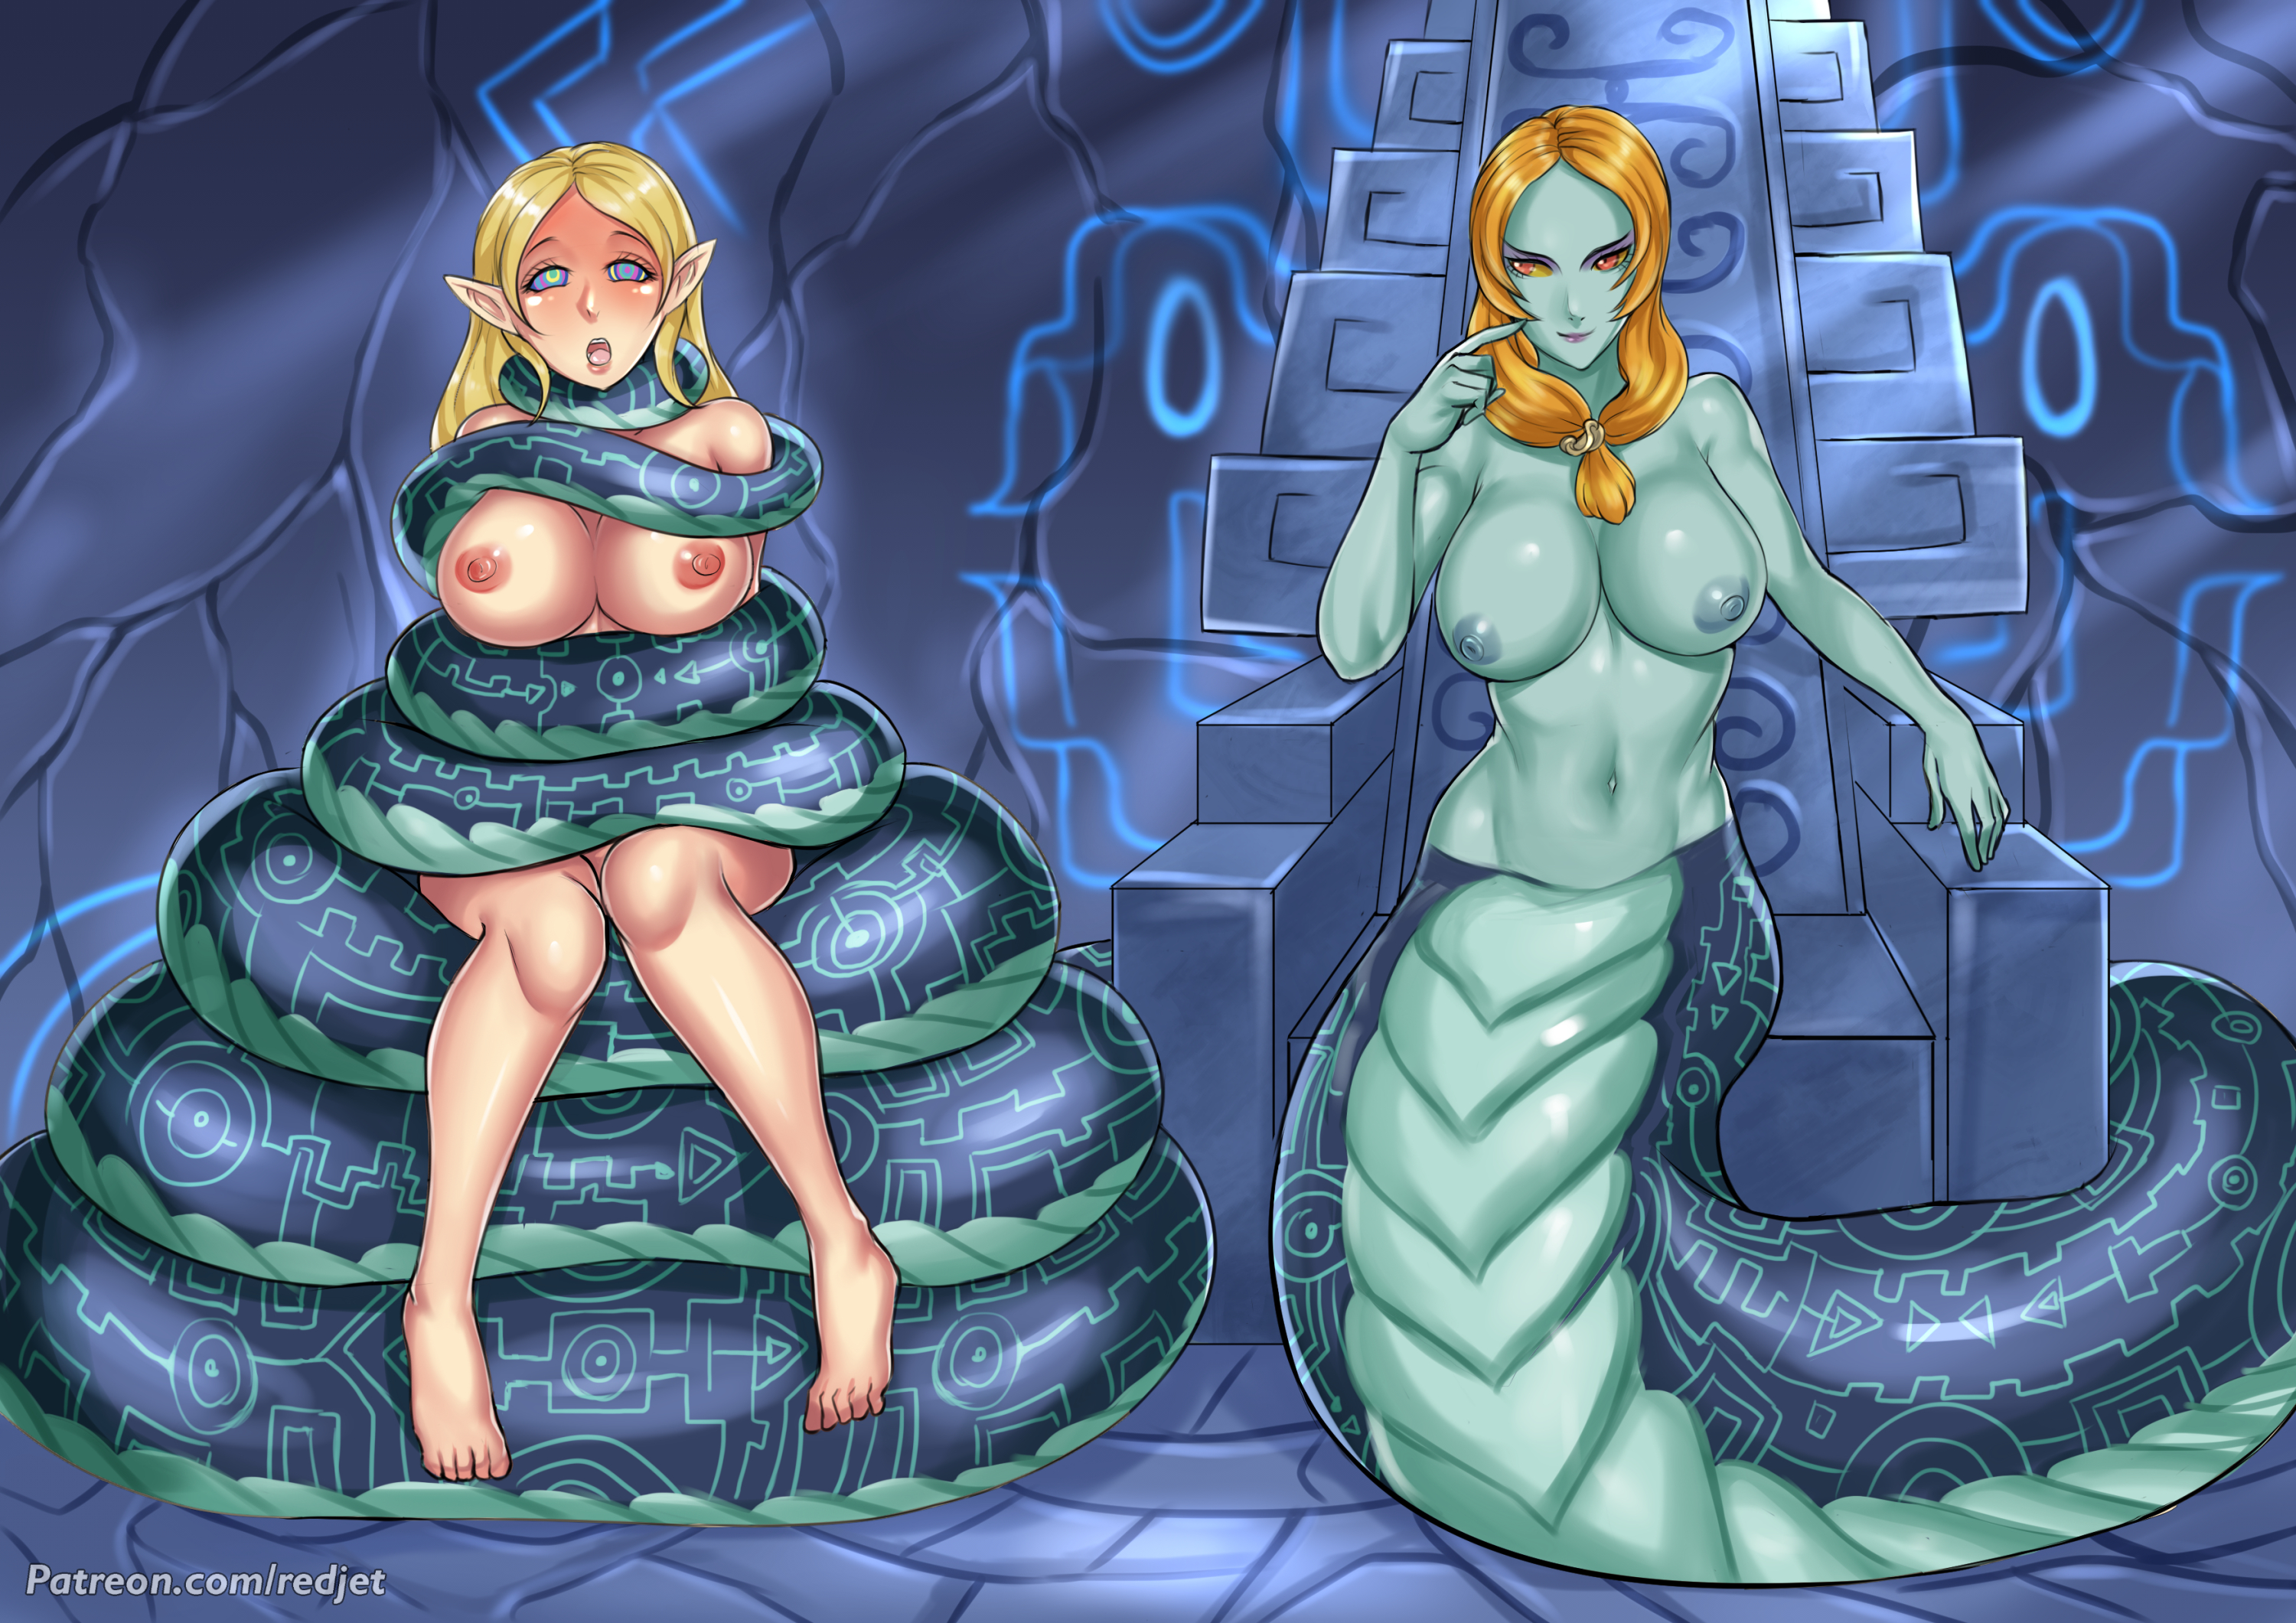 Lamia Midna and Zelda by Redjet